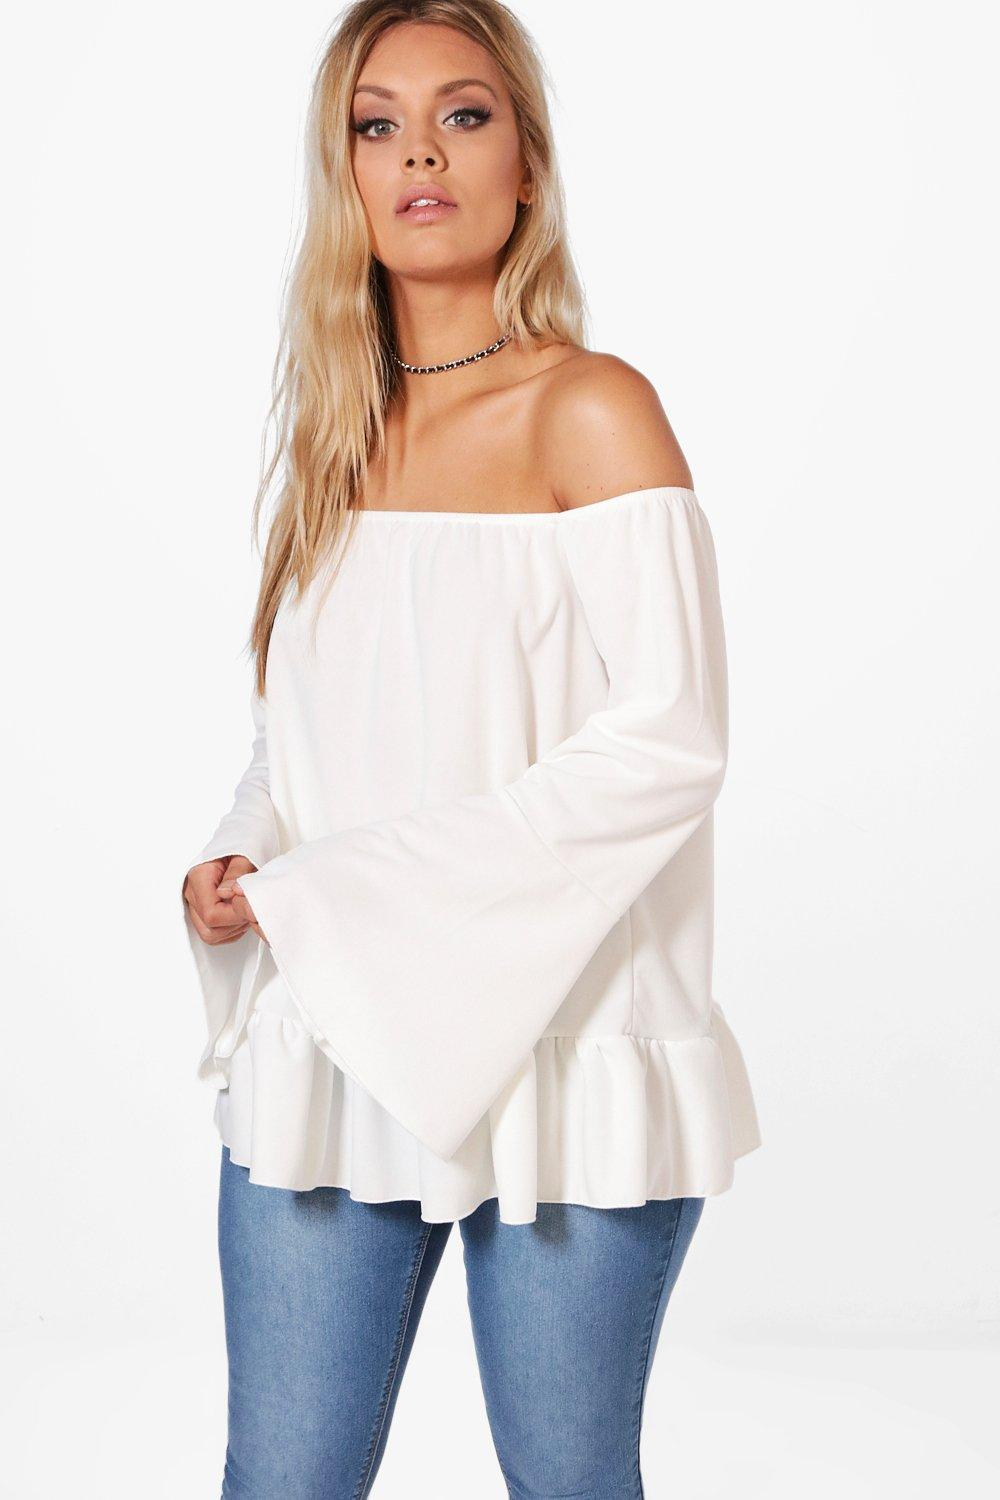 563b8a8e8314a6 Lyst - Boohoo Plus Sophia Off The Shoulder Flare Sleeve Top in White